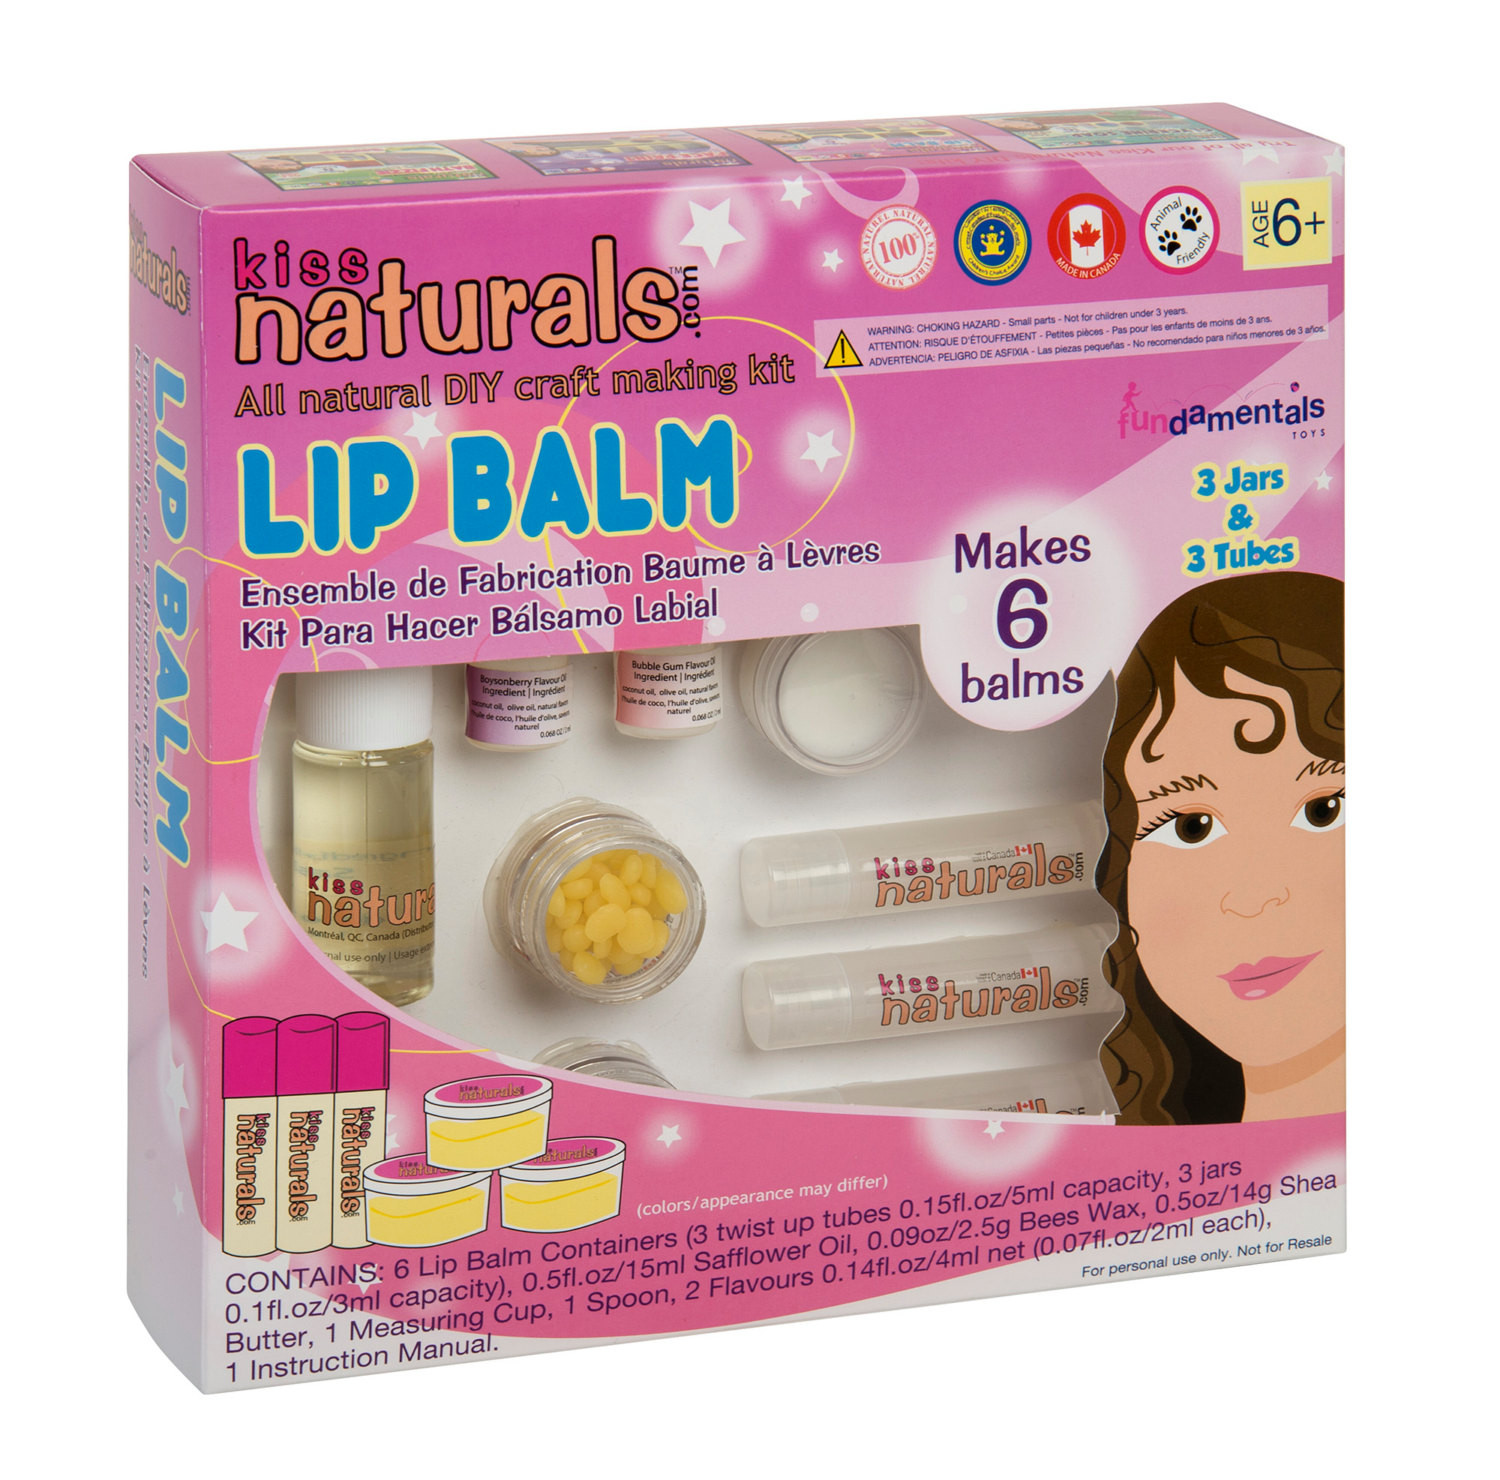 Best ideas about DIY Lip Balm Kit . Save or Pin Kiss Naturals DIY Lip Balm Kit by kissnaturals on Etsy Now.